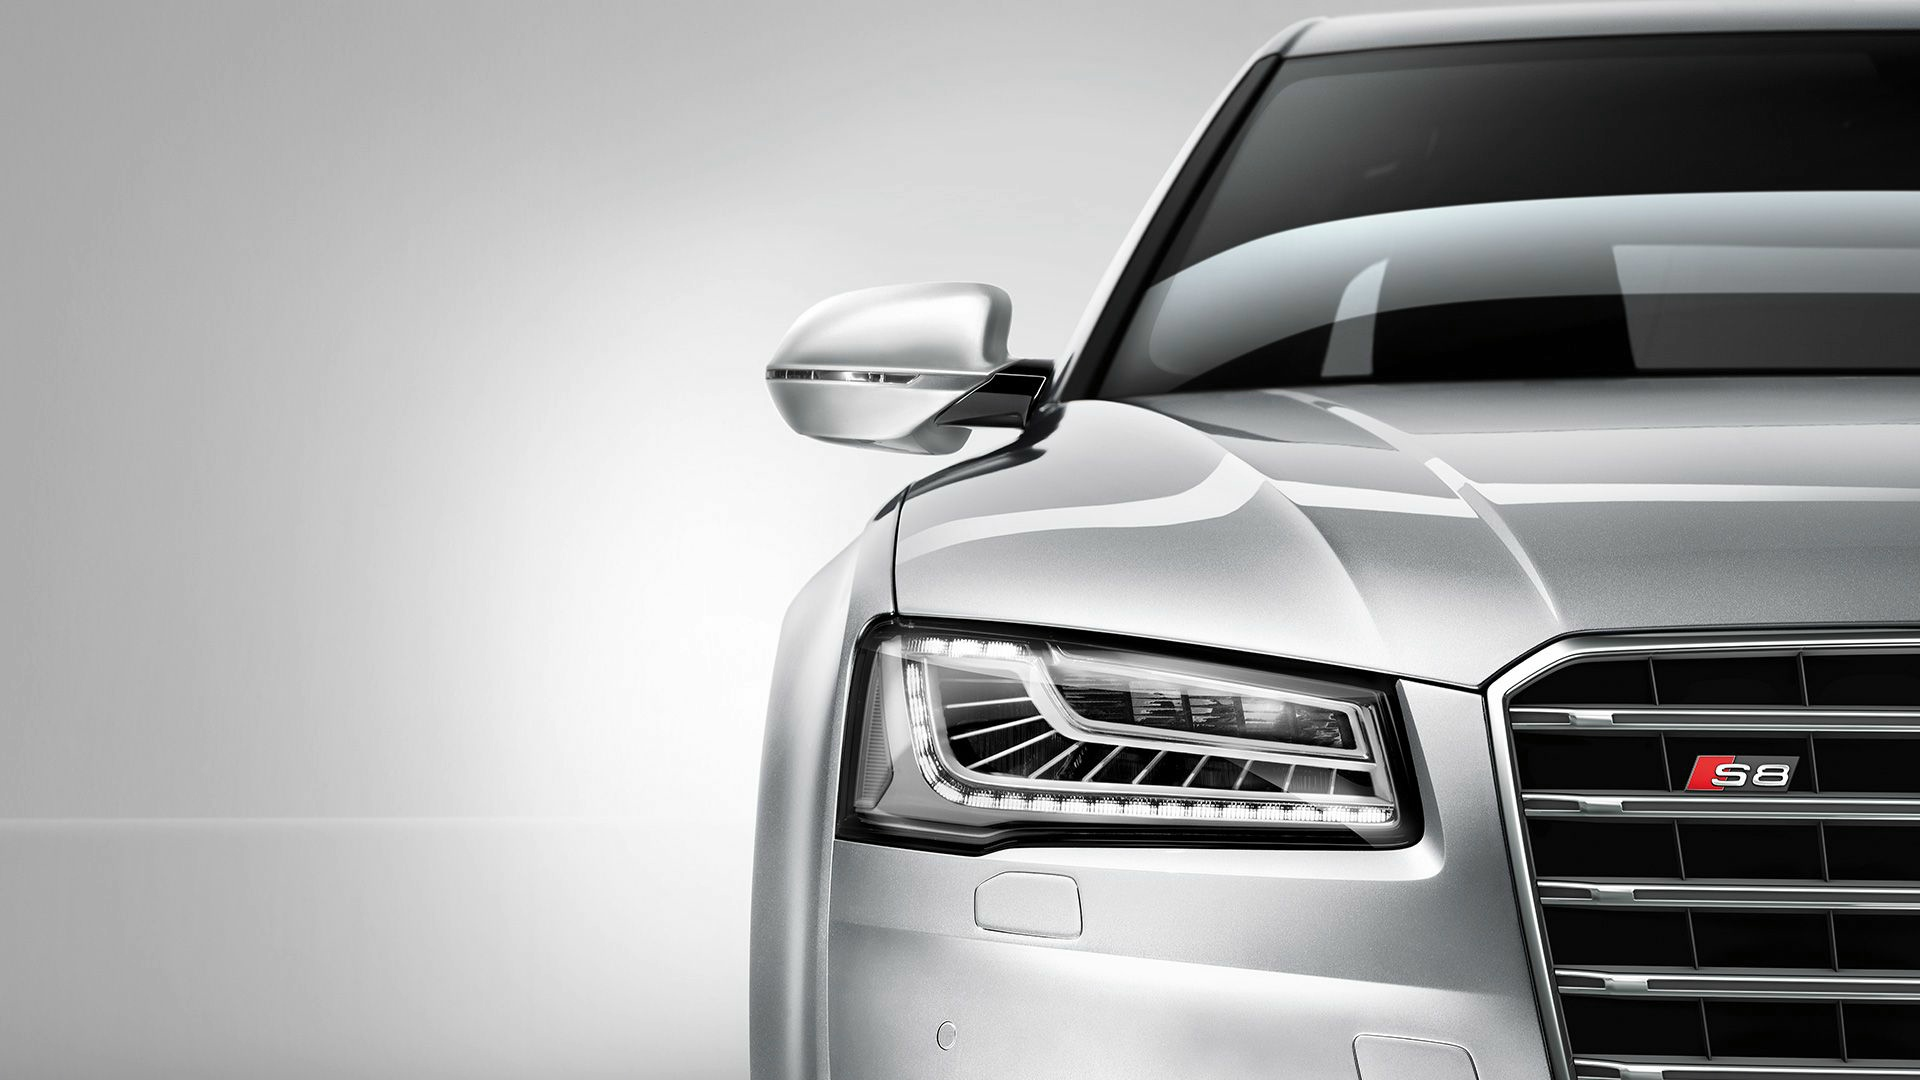 Audi S8 HD Wallpapers Background Images Photos Pictures YL 1920x1080